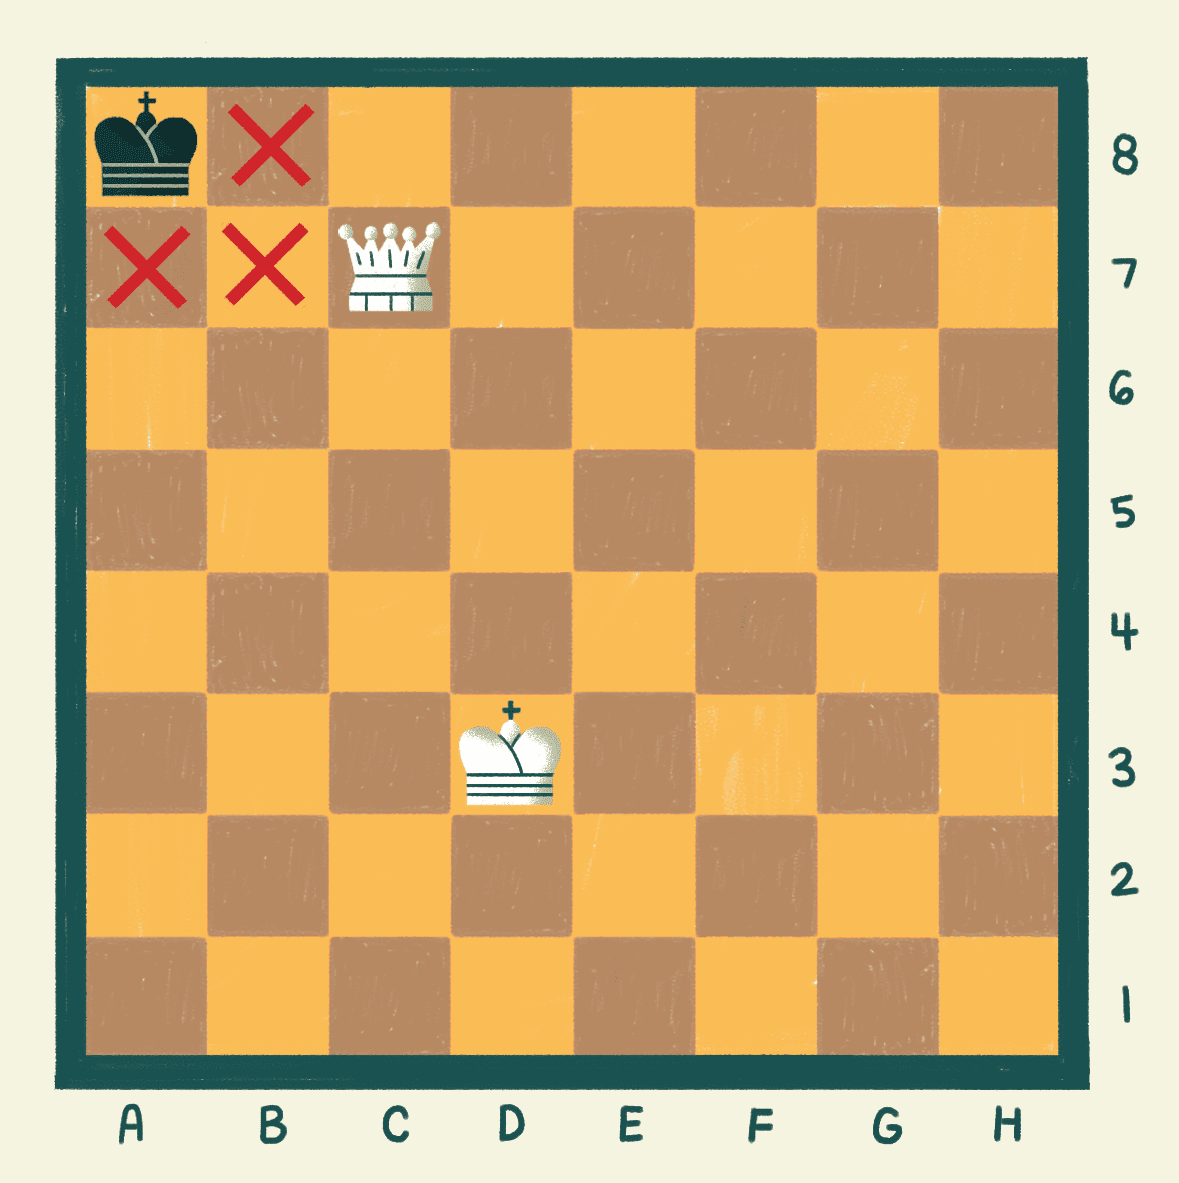 Threat of salemate in chess